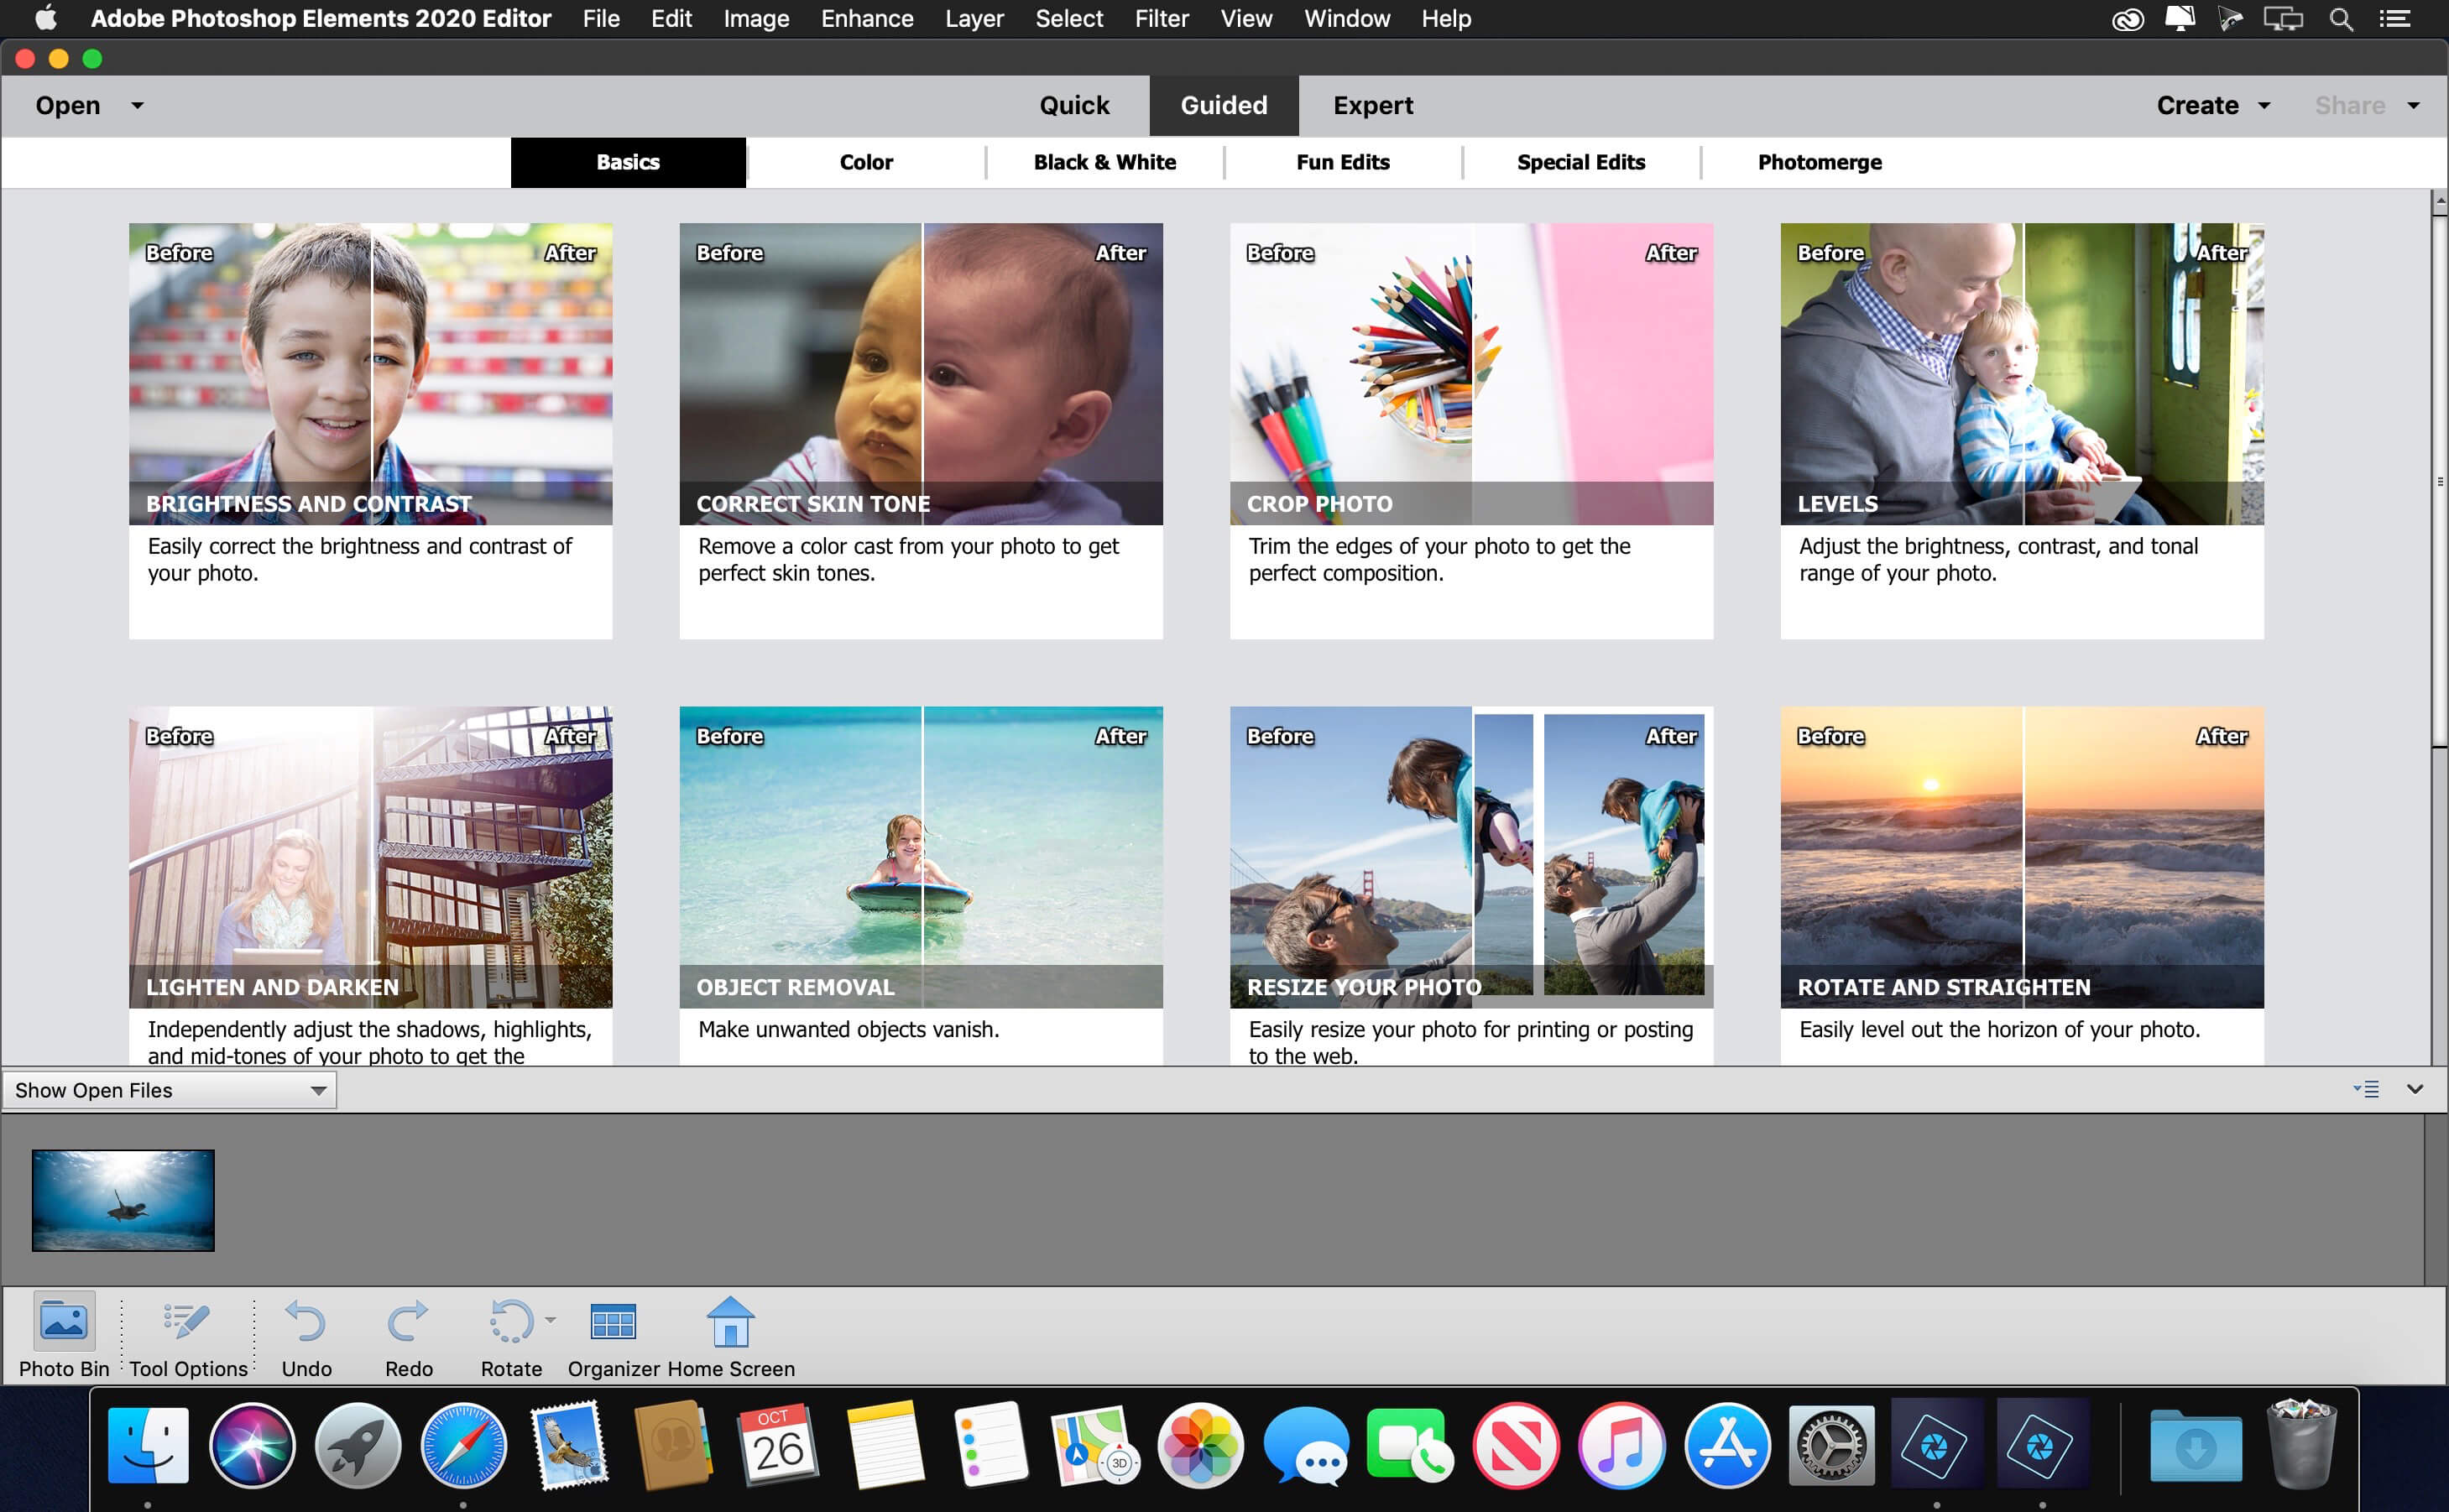 Adobe Photoshop Elements 2020 for Mac Free Download